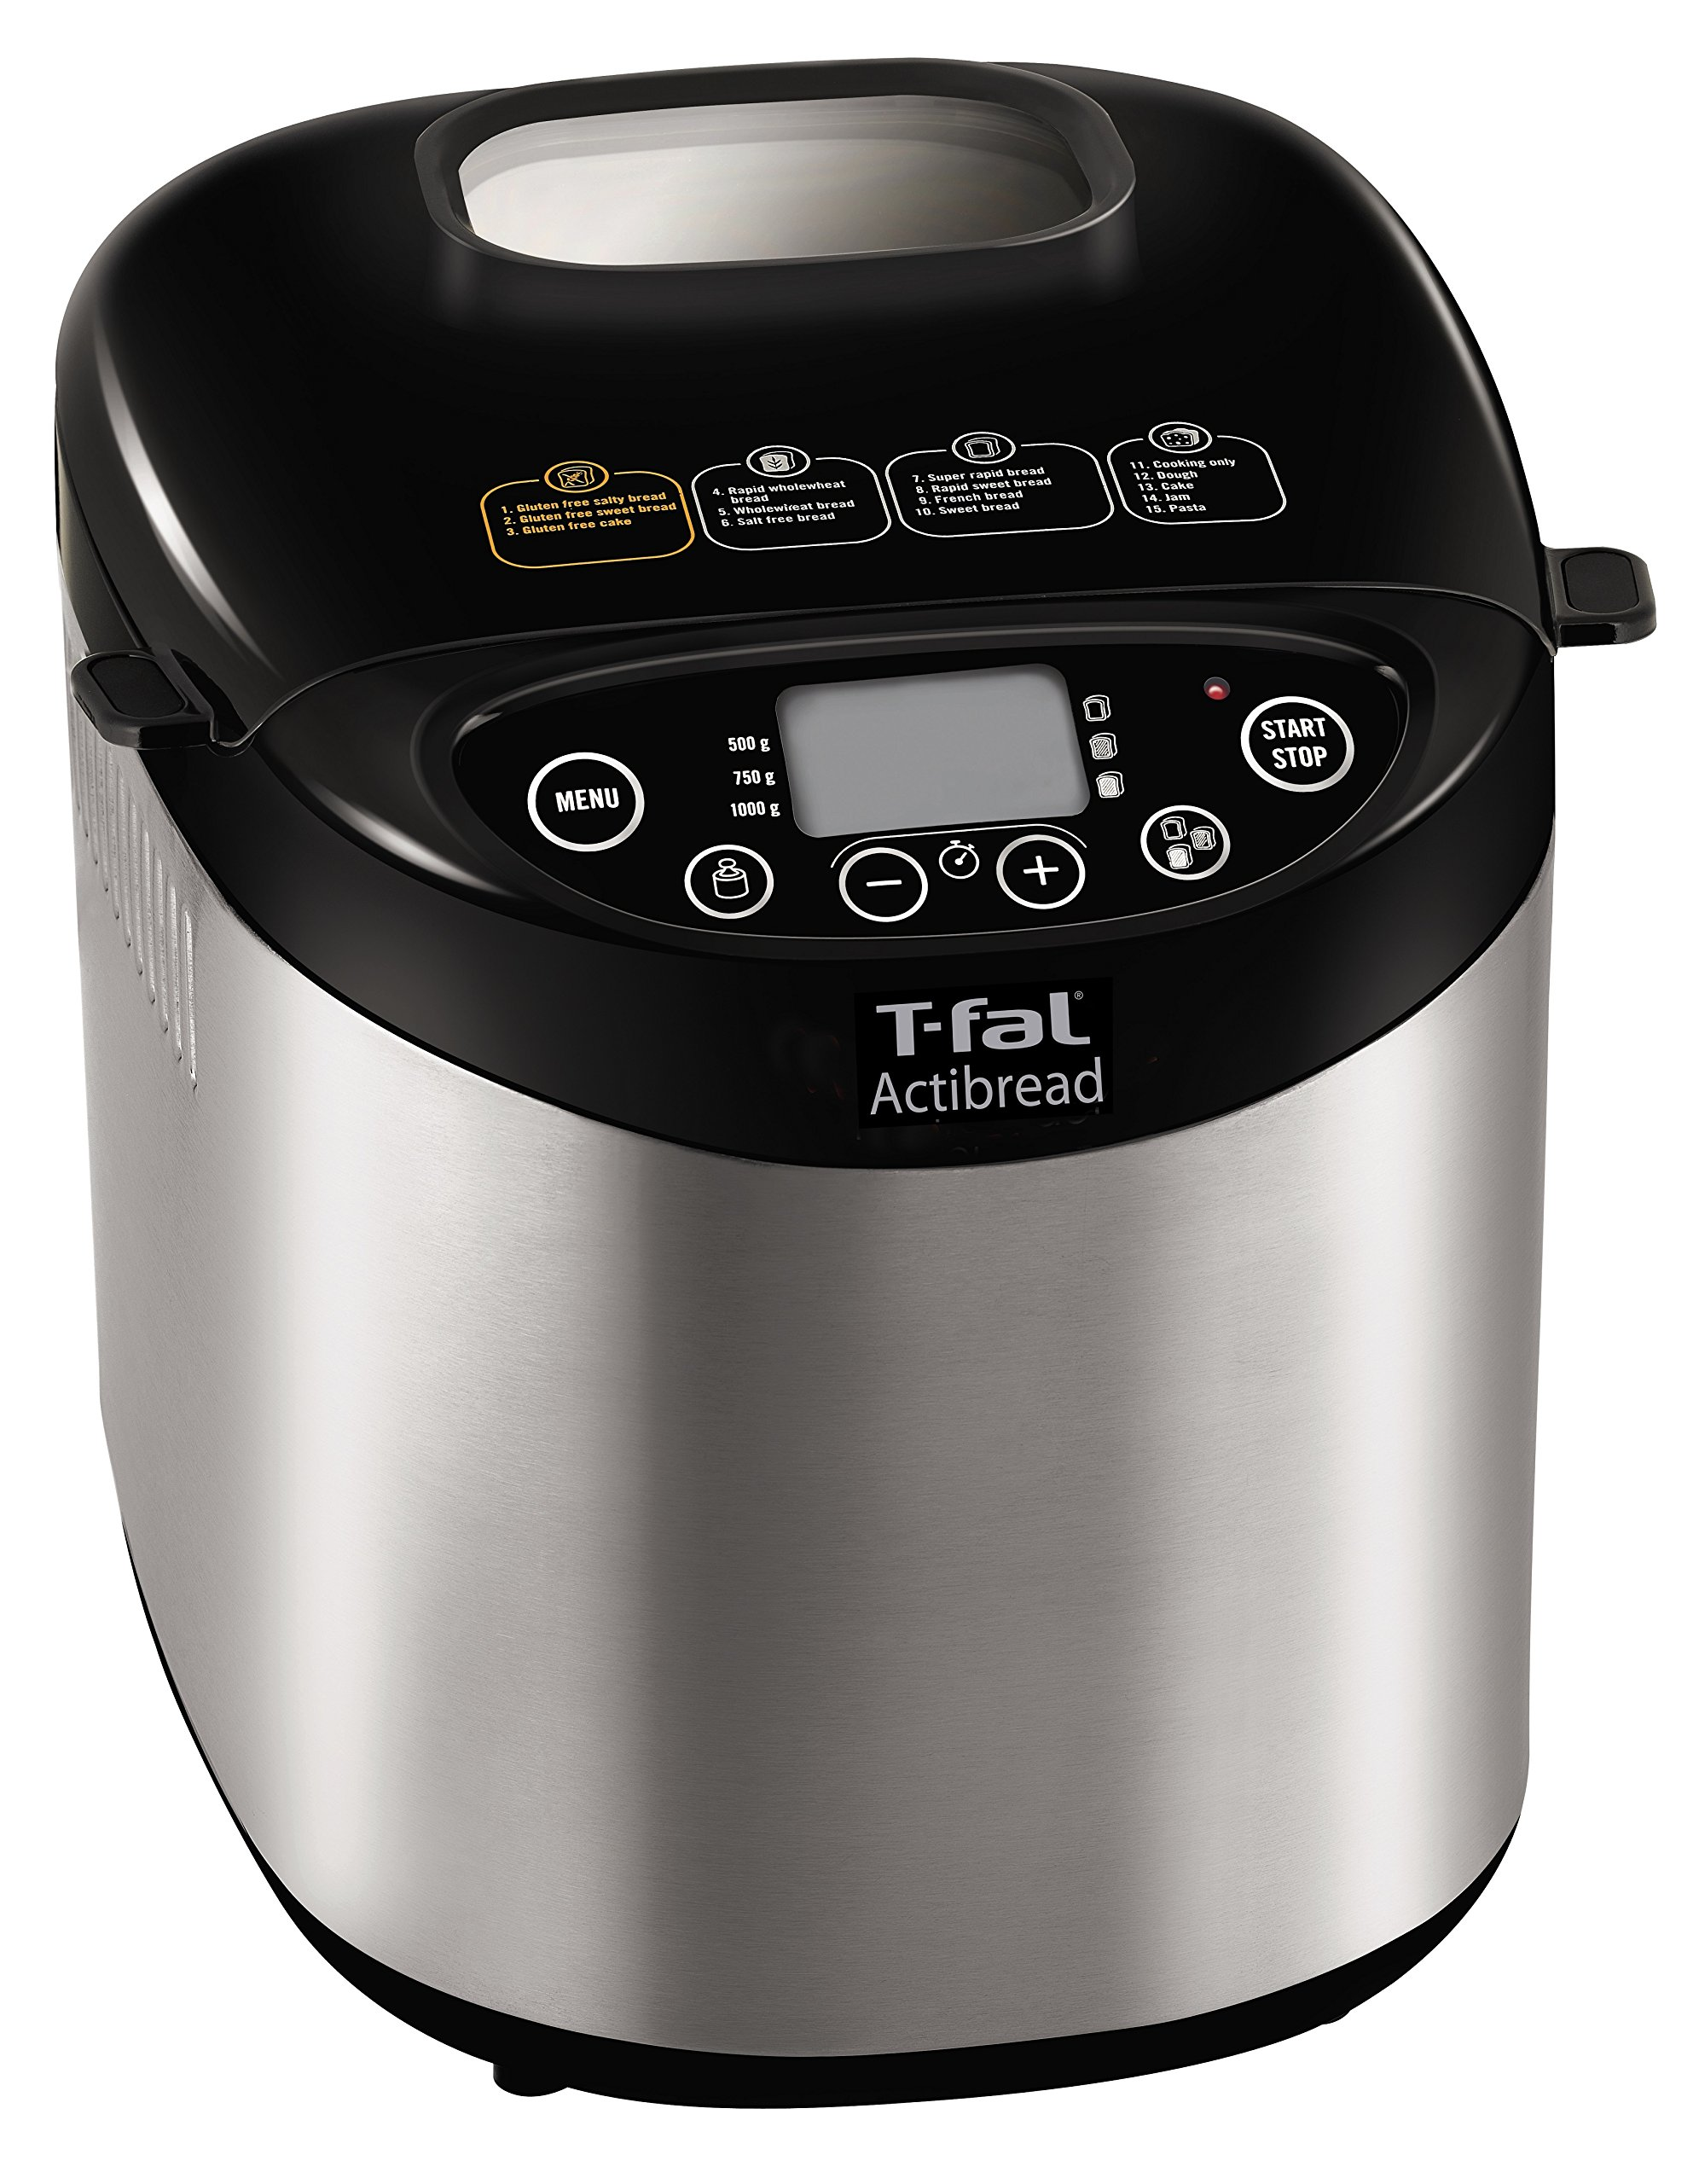 T-fal PF311E ActiBread Programmable Bread Machine Stainless Steel Housing Nonstick Coating Automatic Bread Maker with LCD Display, 2-Pound, Silver by T-fal (Image #7)